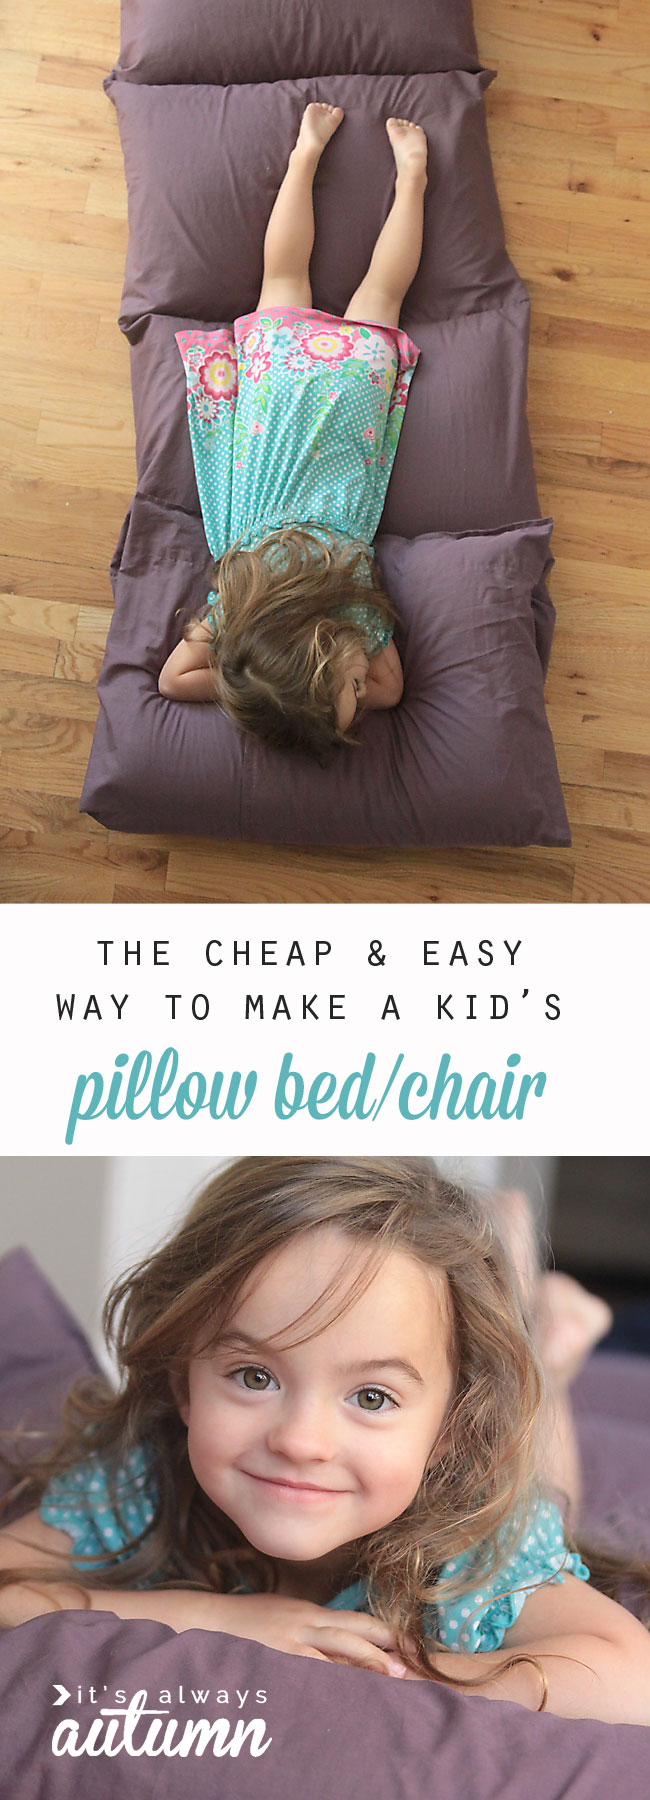 pillow-bed-chair-how-to-make-kid-child-gift-idea-sew